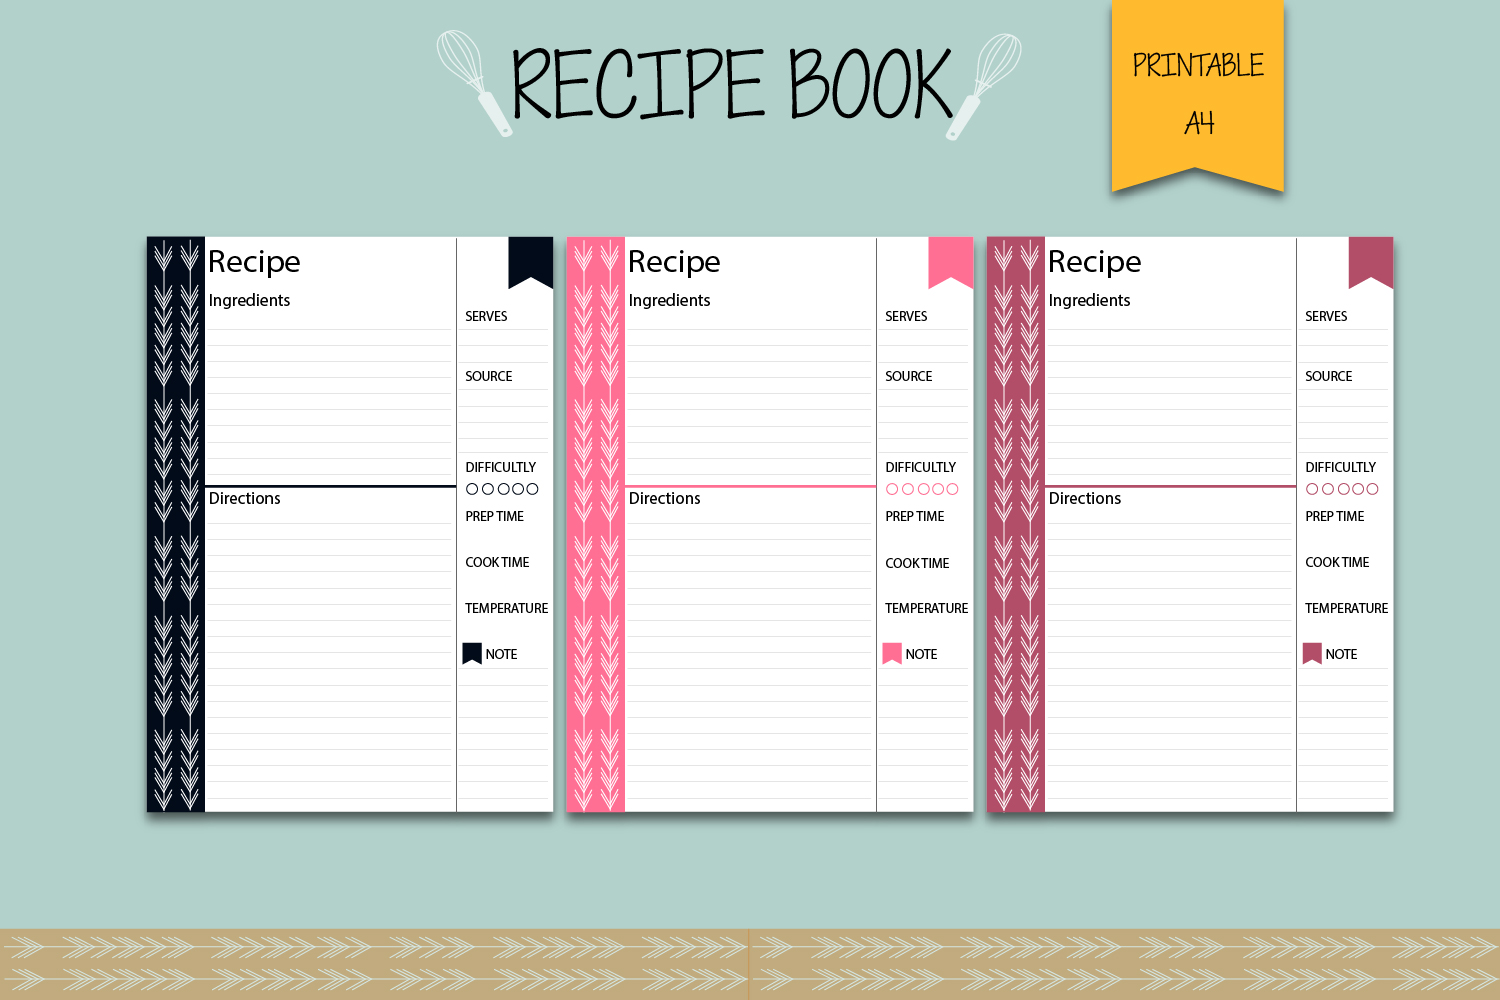 Recipe binder, Recipe book, Printable planner example image 3